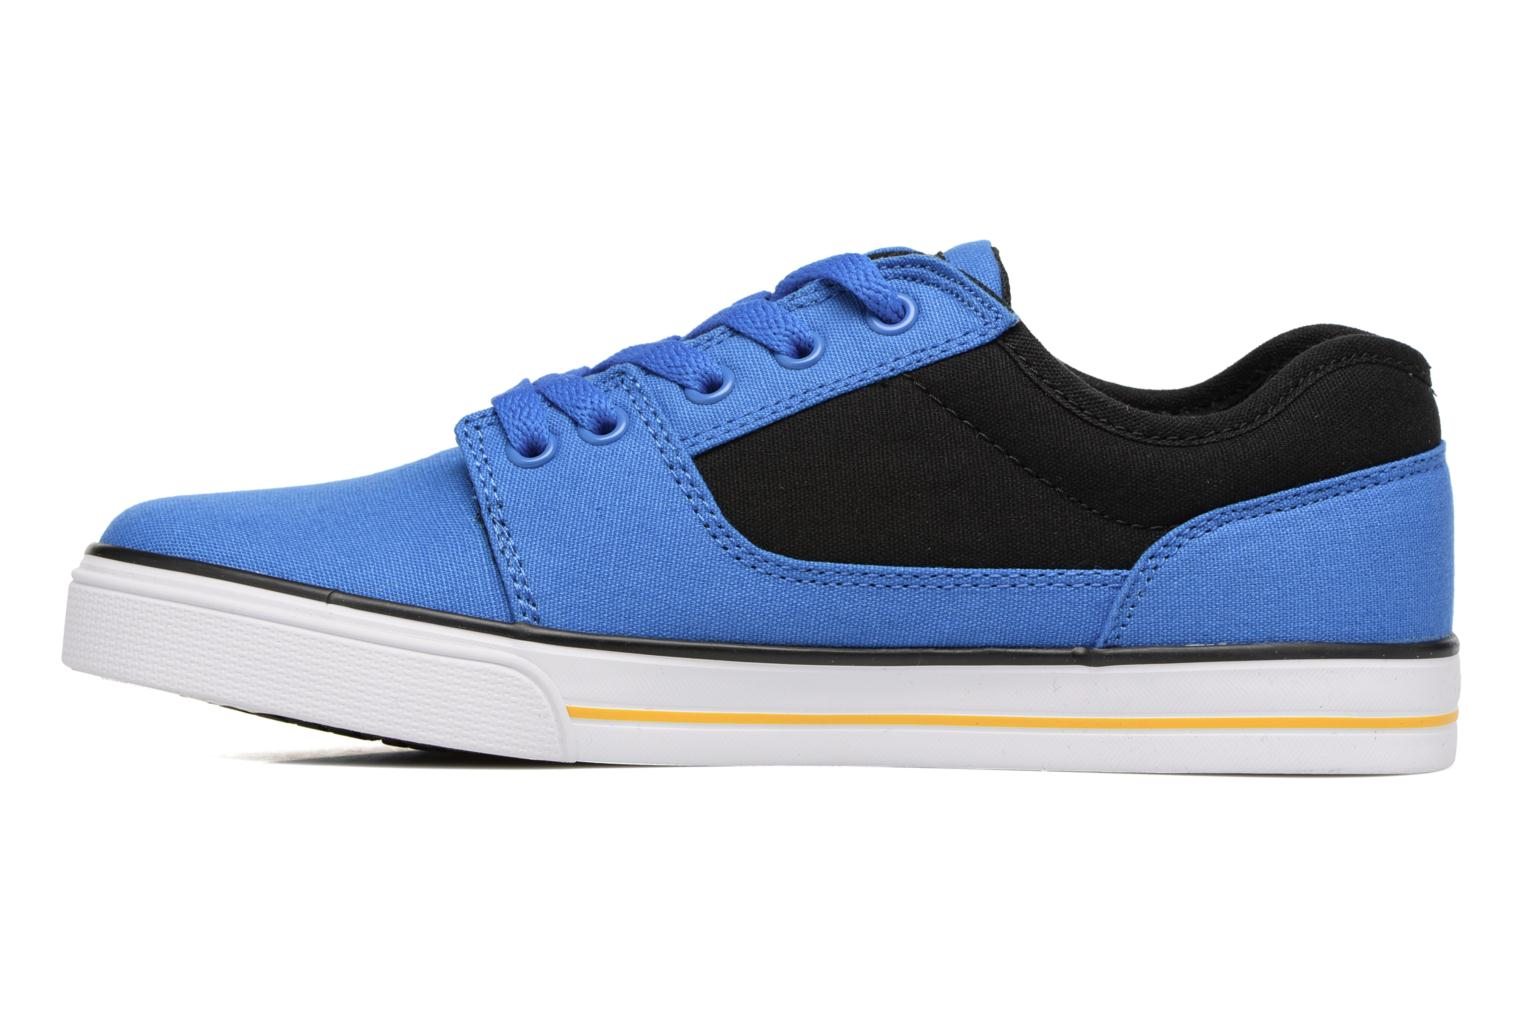 TONIK SE Blue / Black / Grey